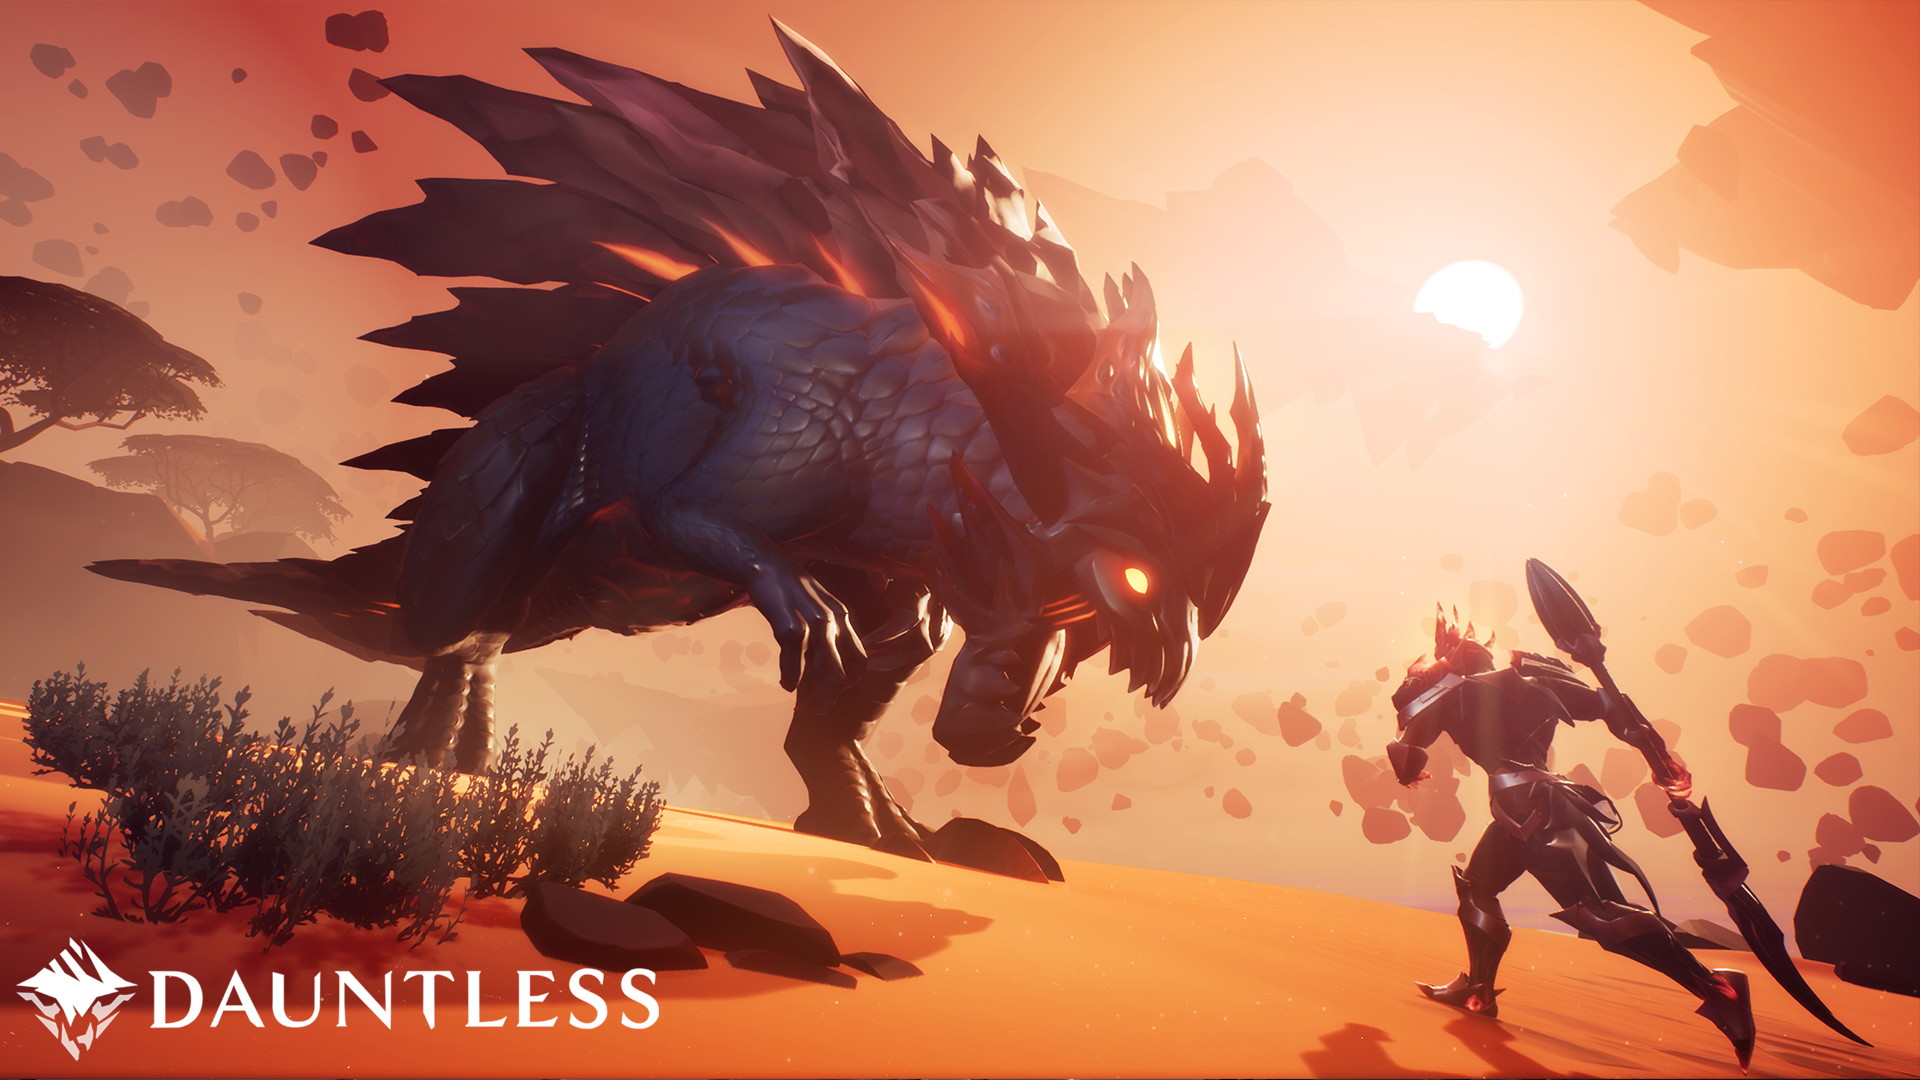 Dauntless - screenshot 14